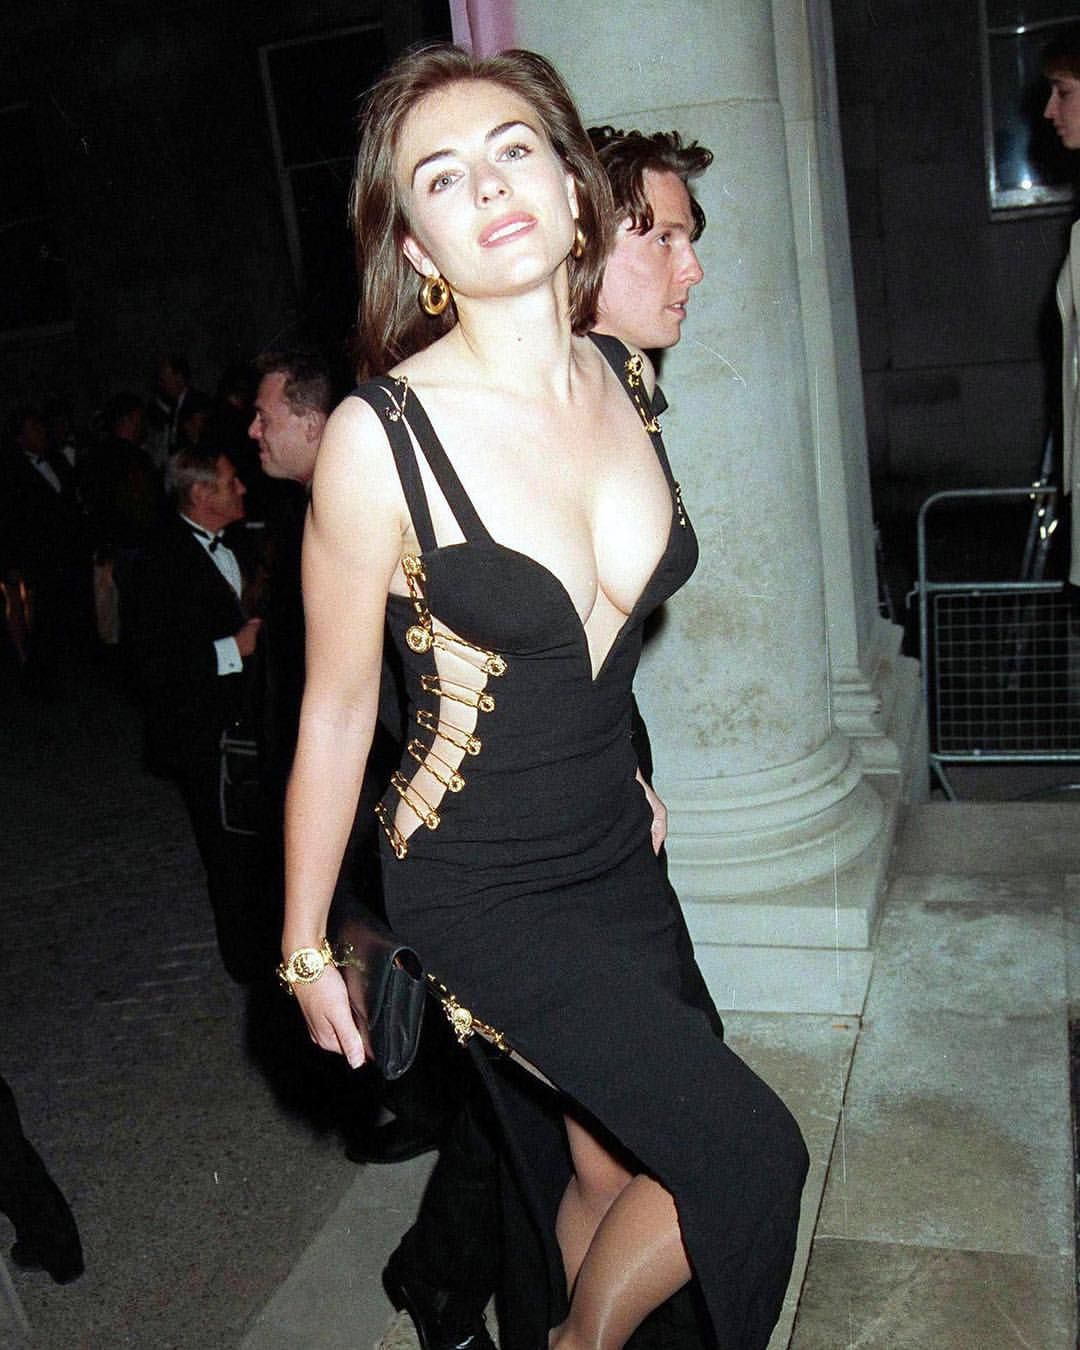 Elizabeth Hurley Wearing That Black Dress To The Premiere Of Four Weddings And A Funeral With Then Boyfriend Hu Hurley Dress Elizabeth Hurley Versace Dress